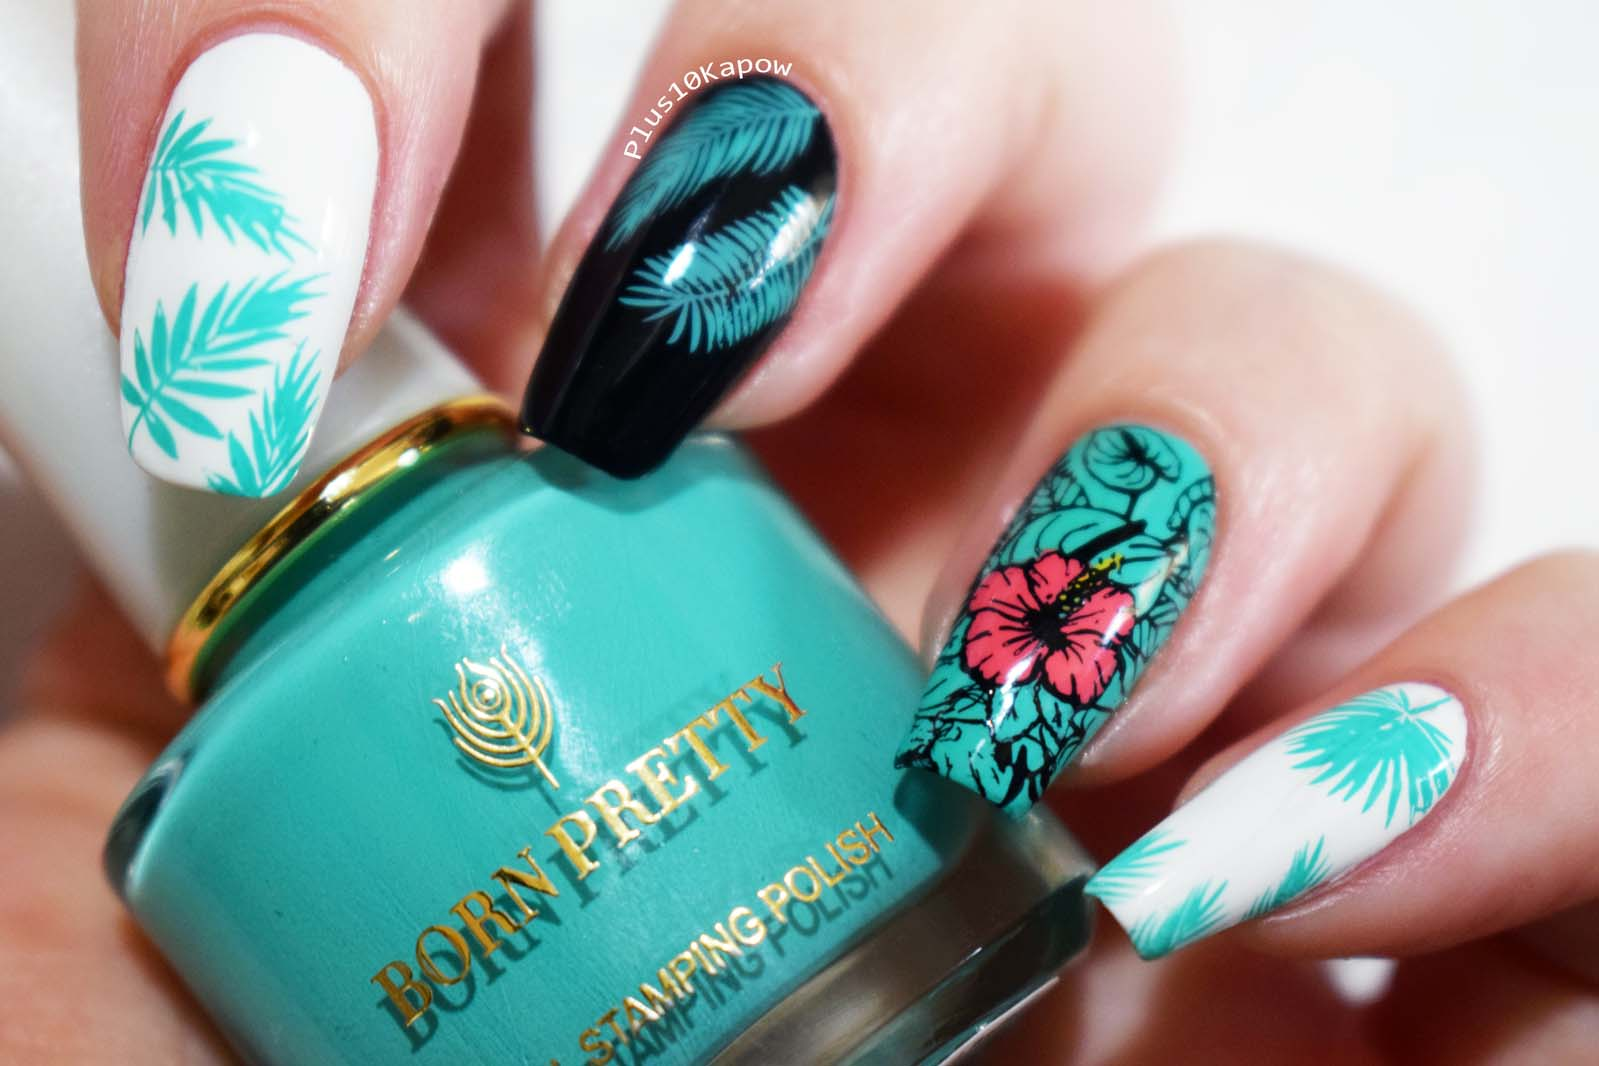 Born Pretty Ariel stamping polish